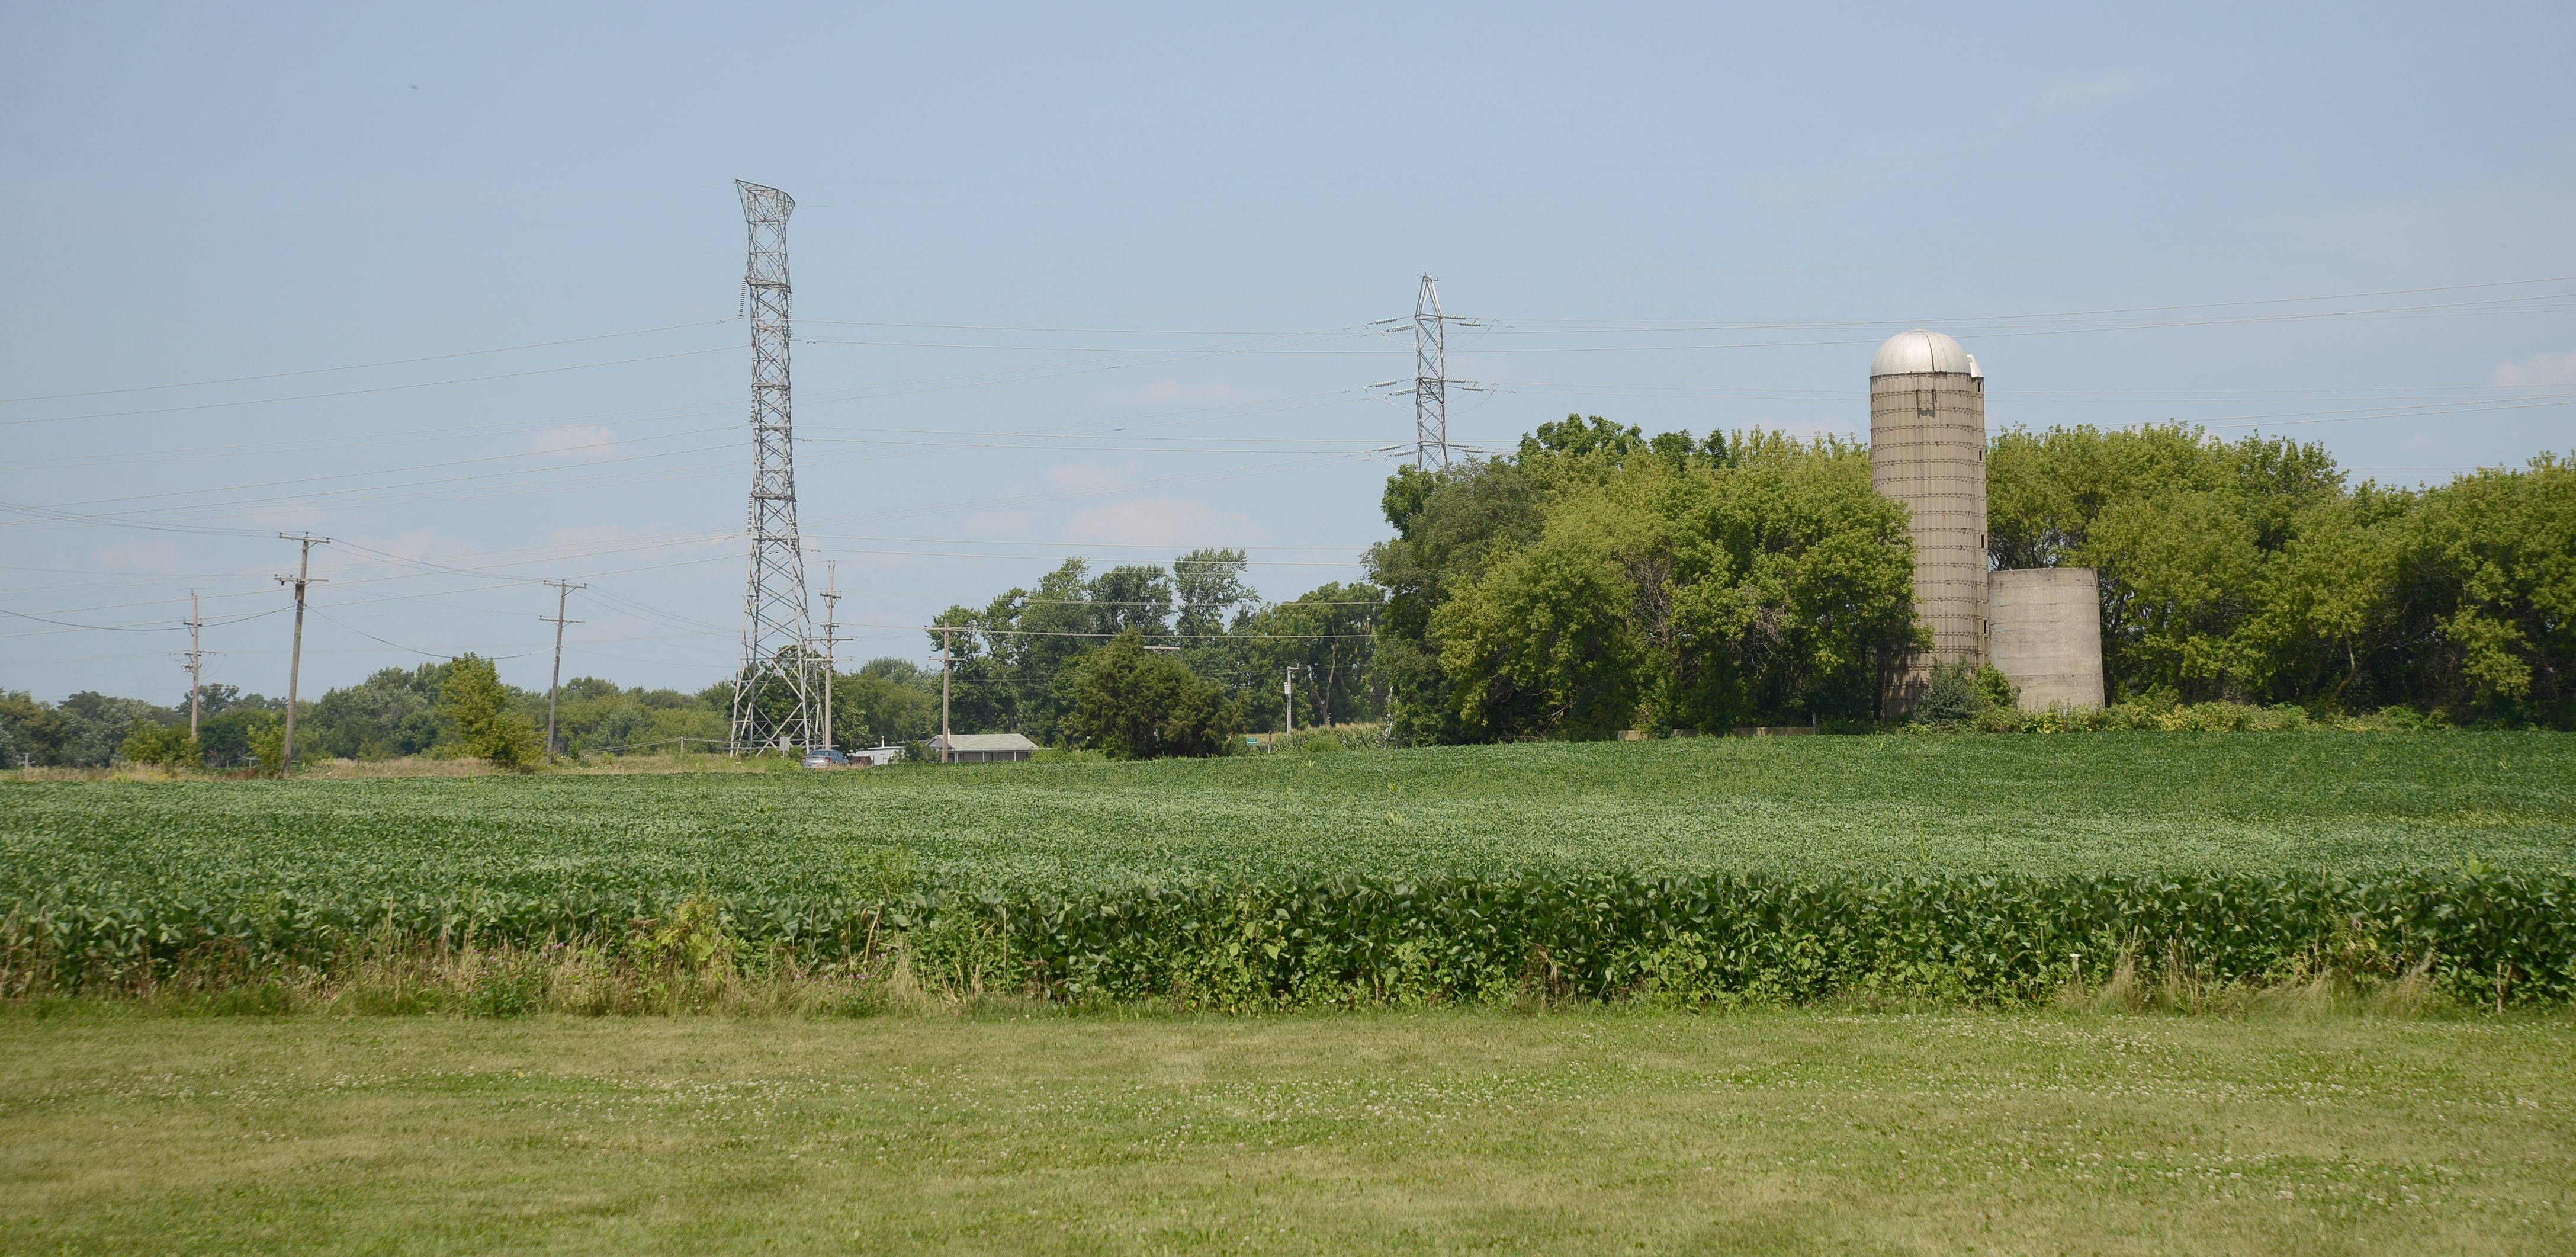 The idyllic town of Oakwood Hills in McHenry County is facing its first major controversy with a proposed power plant that has riled up residents.